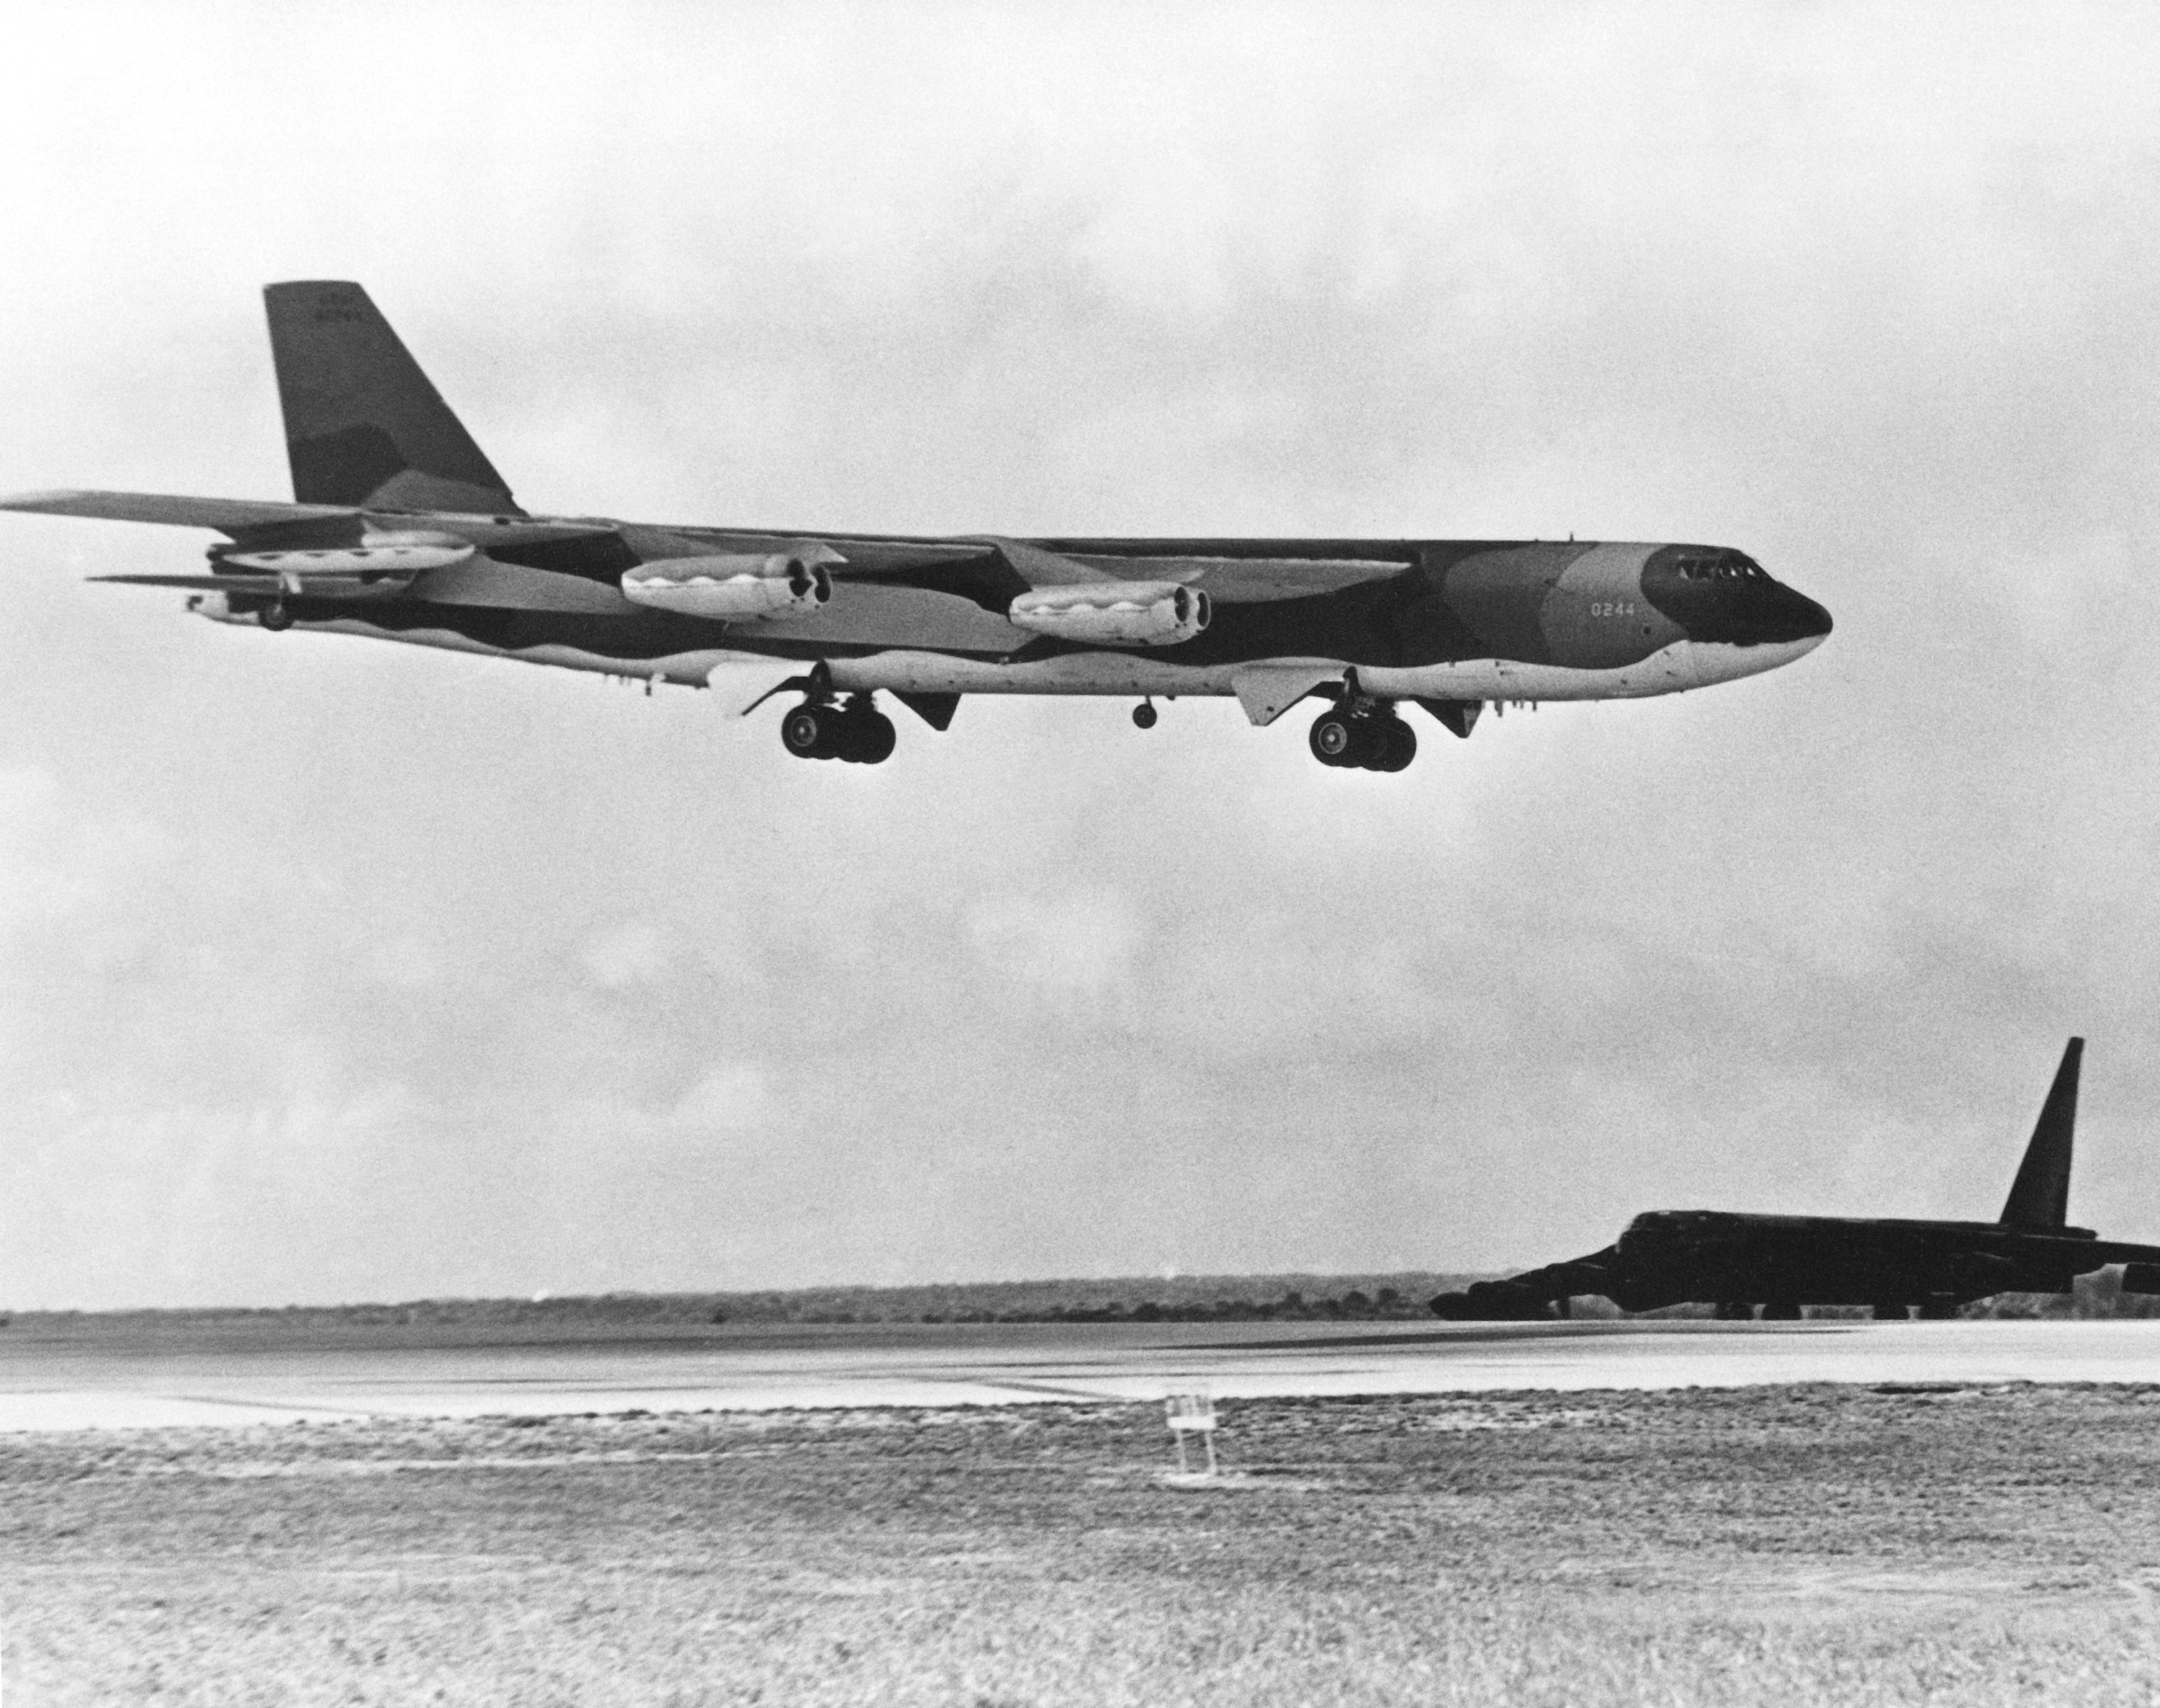 B-52G_landing_at_Andersen_AFB_Dec_1972.J